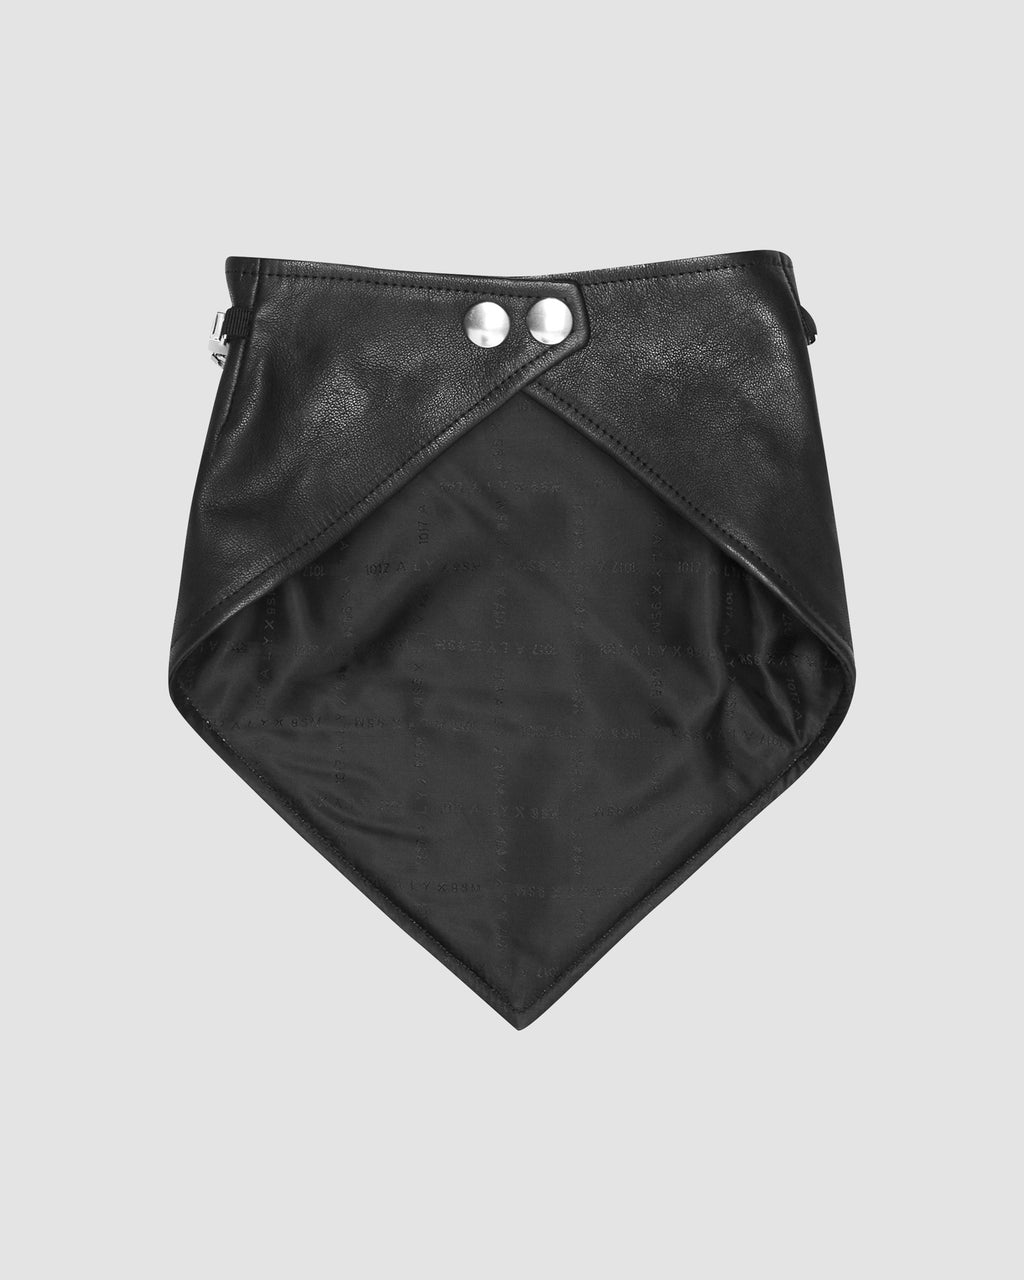 1017 ALYX 9SM | LEATHER BANDANA WITH CHAIN MADE TO ORDER | Scarf | F20, FW20 PRE-ORDER